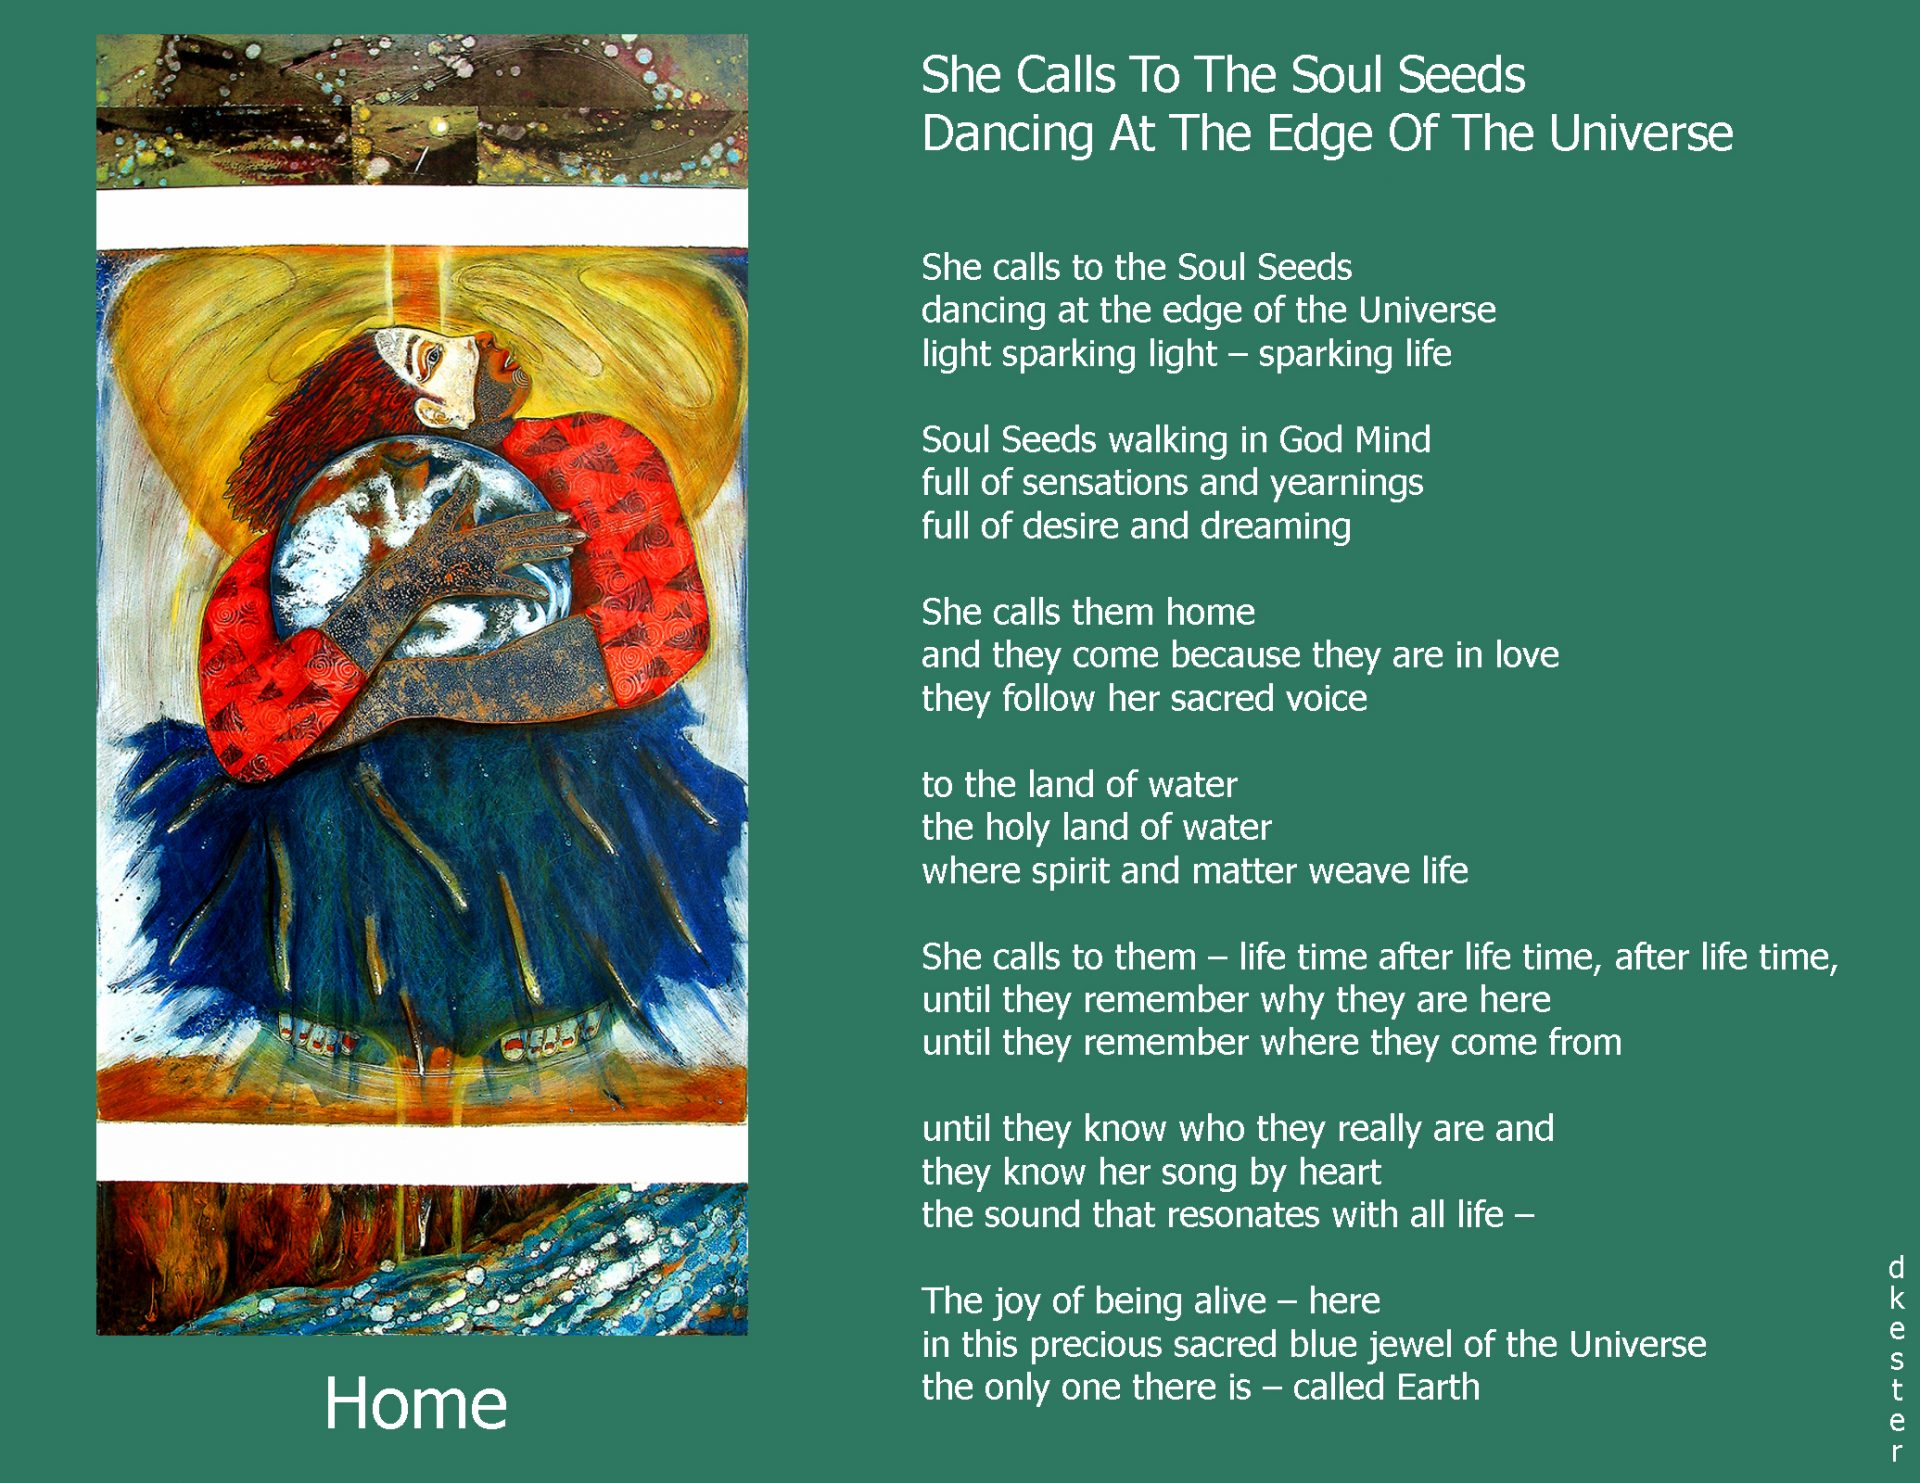 Denis Kester: She calls to the soul seeds